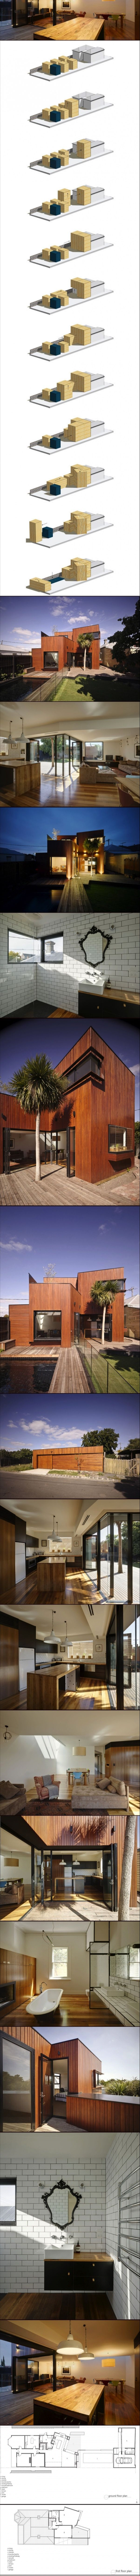 BARROW HOUSE IS A RENOVATION OF ROTATED TIMBER BOXES  Designed by Andrew Maynard Architects